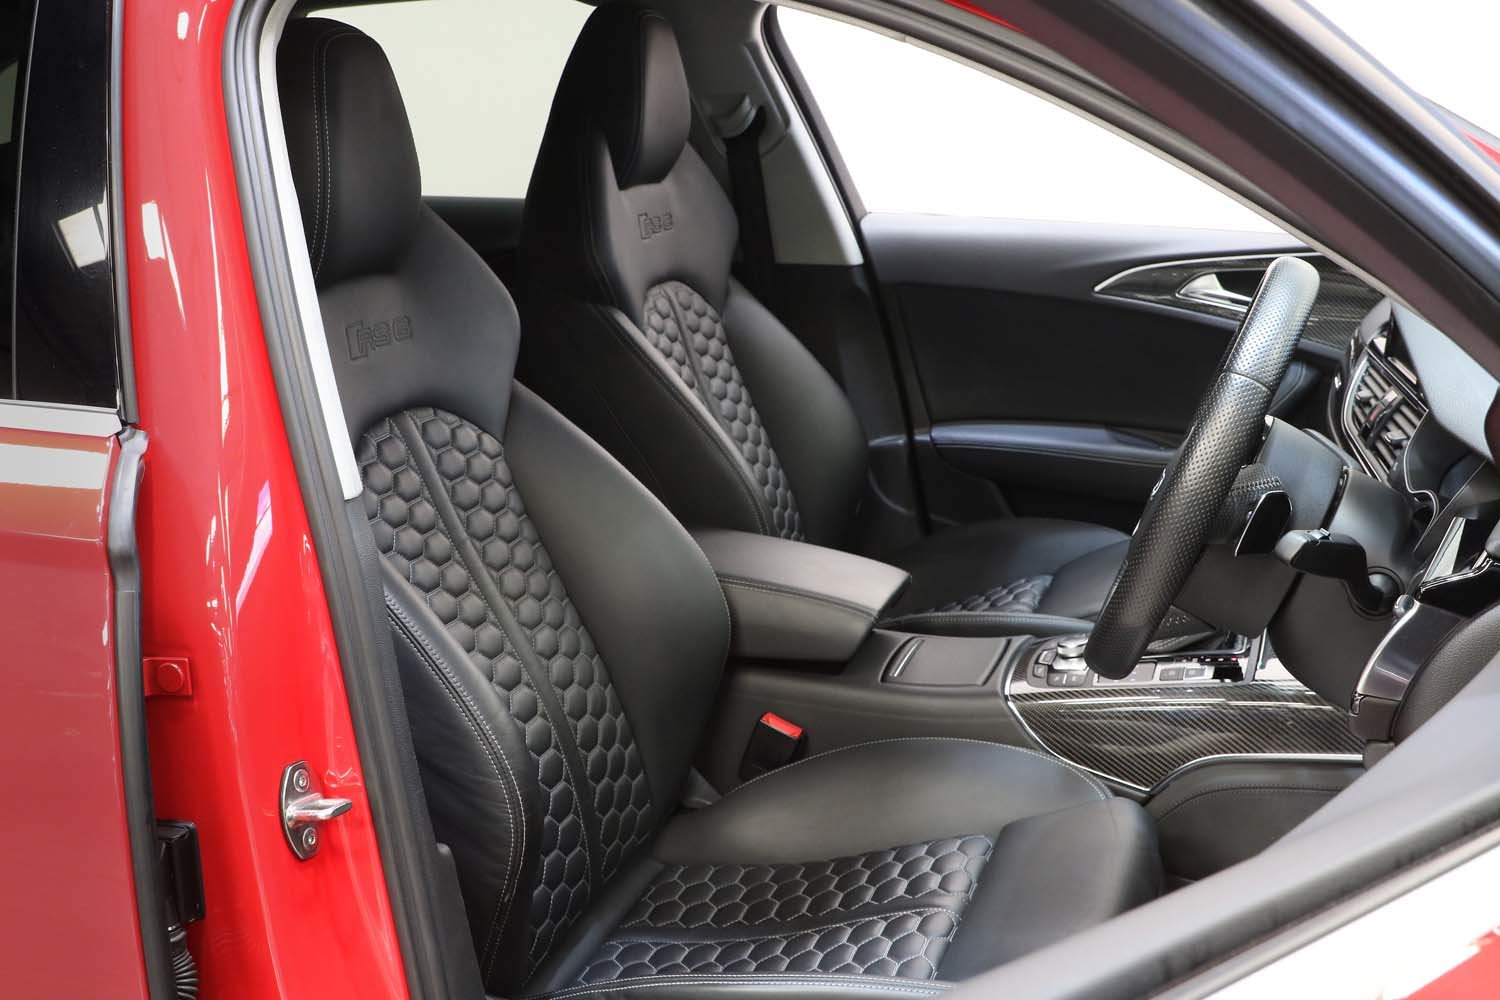 2014 14 64 AUDI RS6 AVANT 4.0T V8 FSI AUTO For Sale (picture 6 of 6)